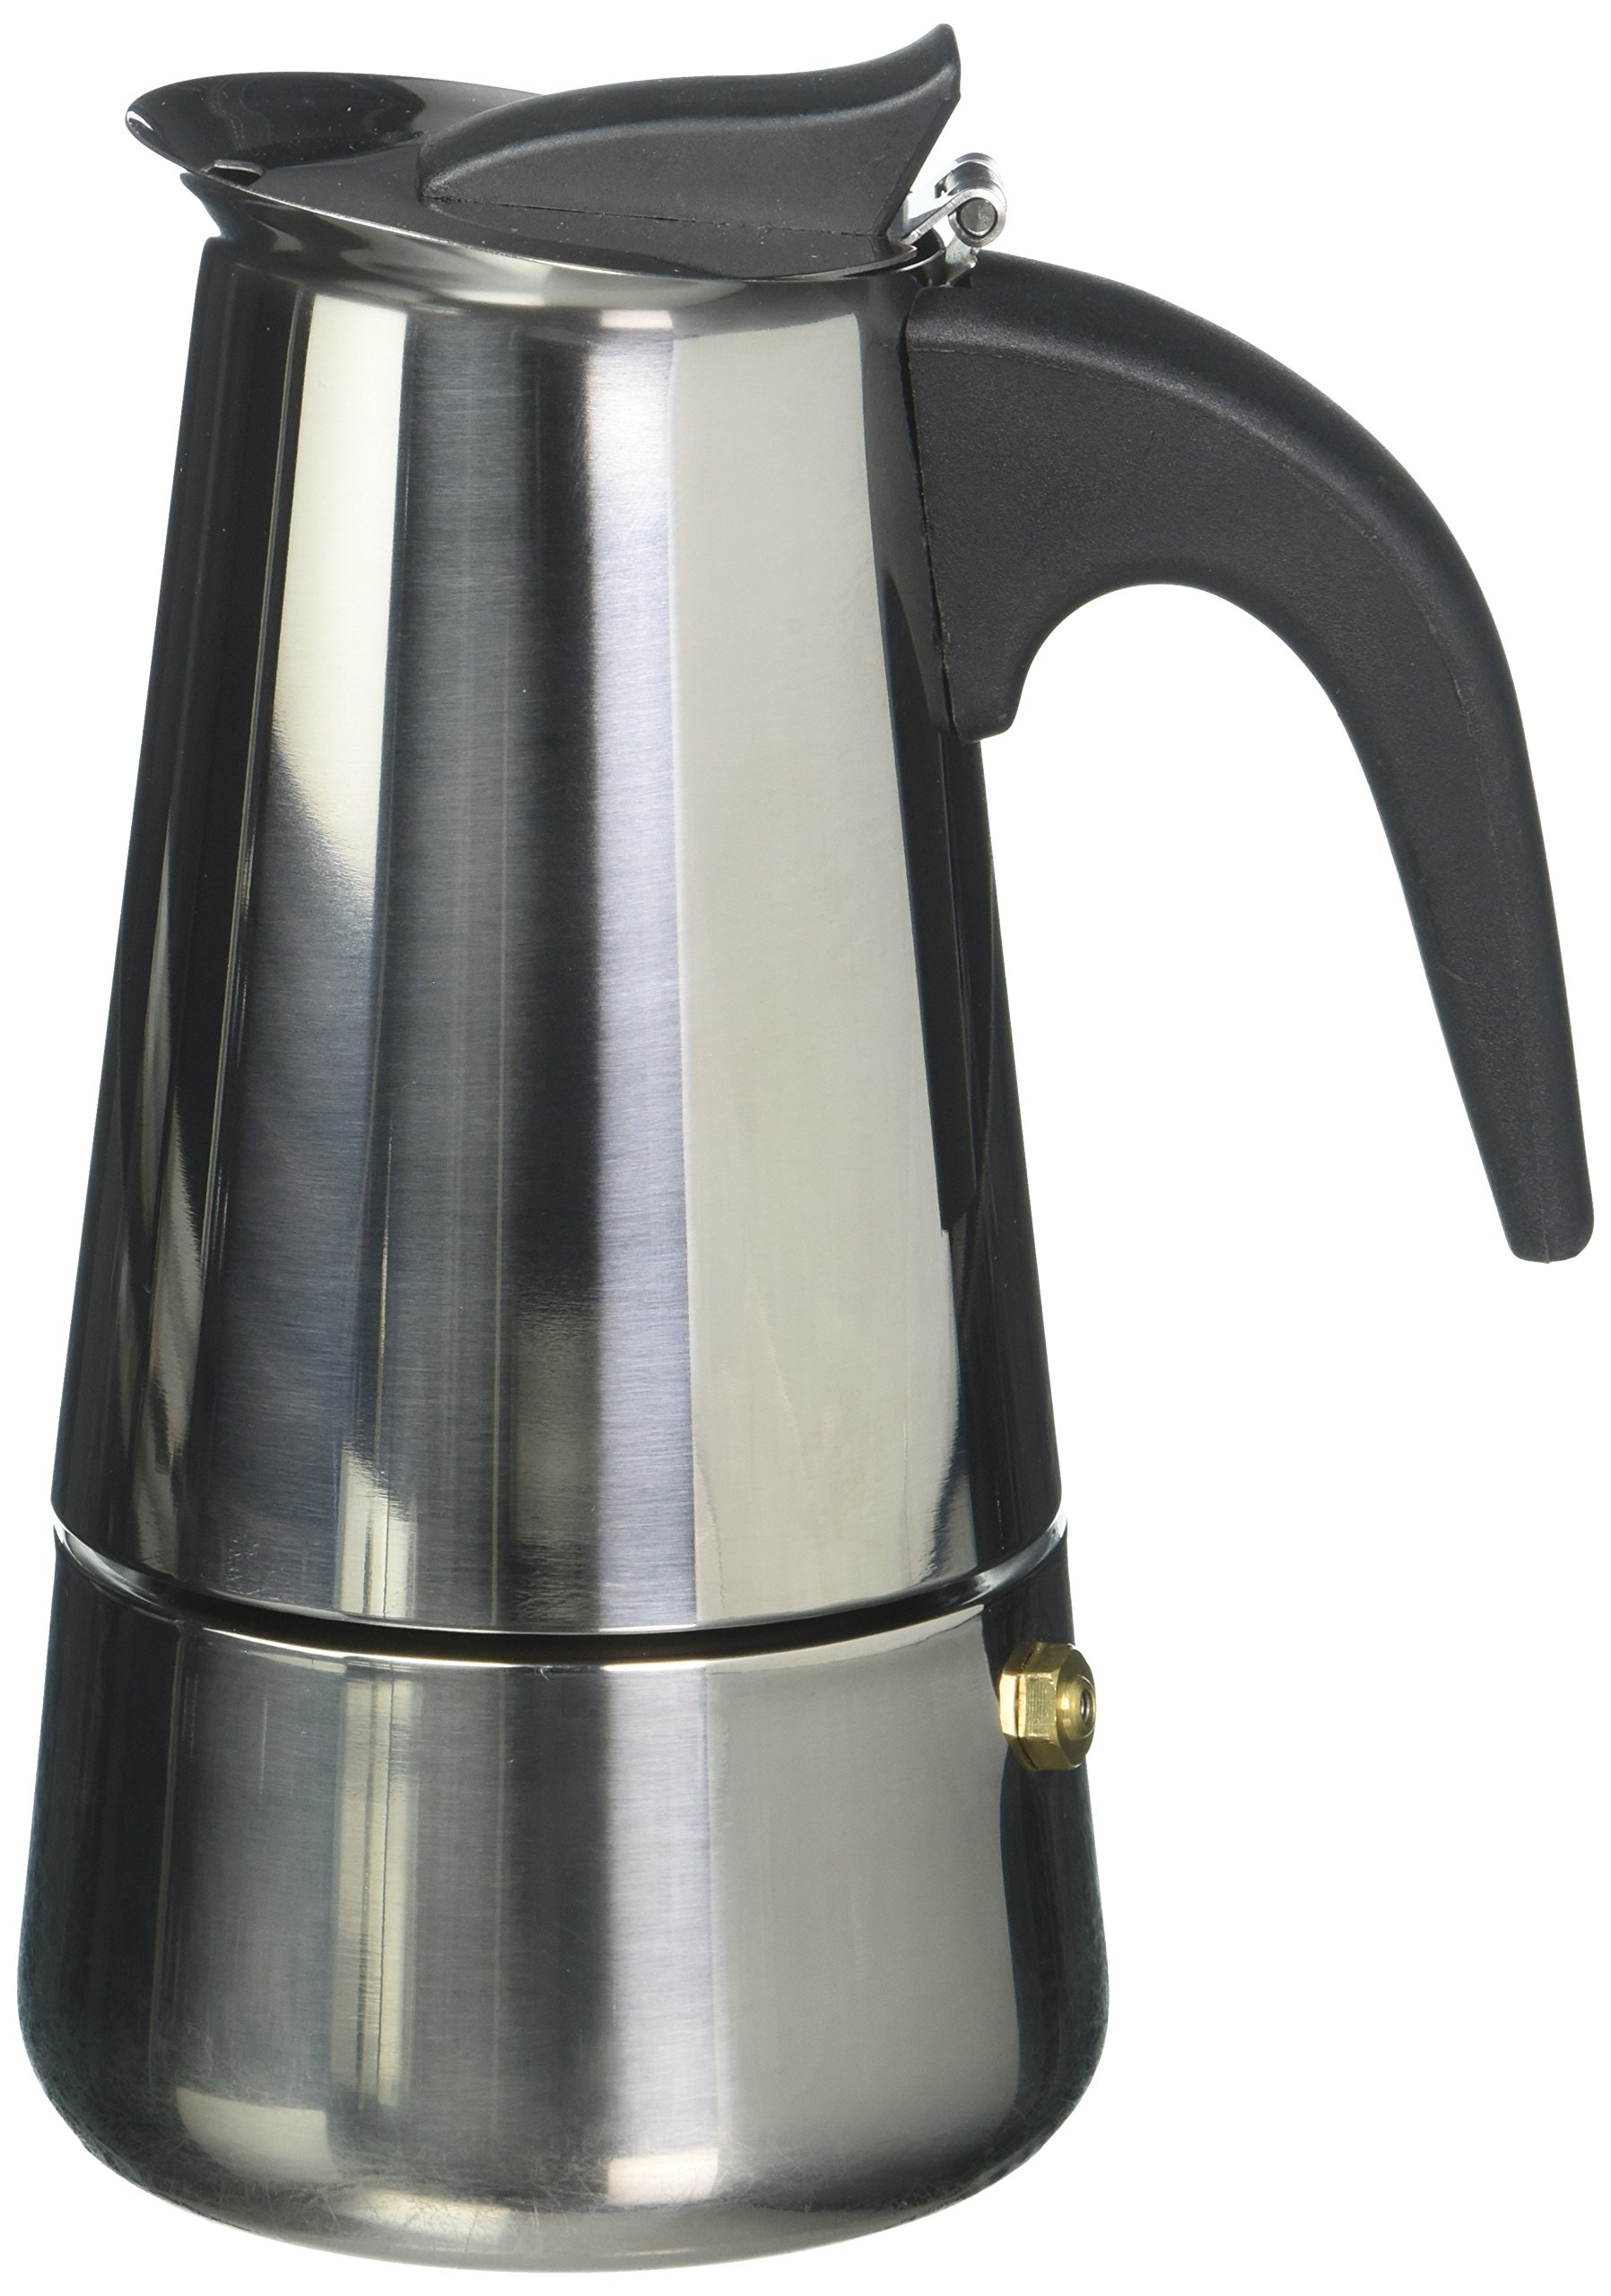 4 Cup Stainless Steel Stovetop Espresso Maker